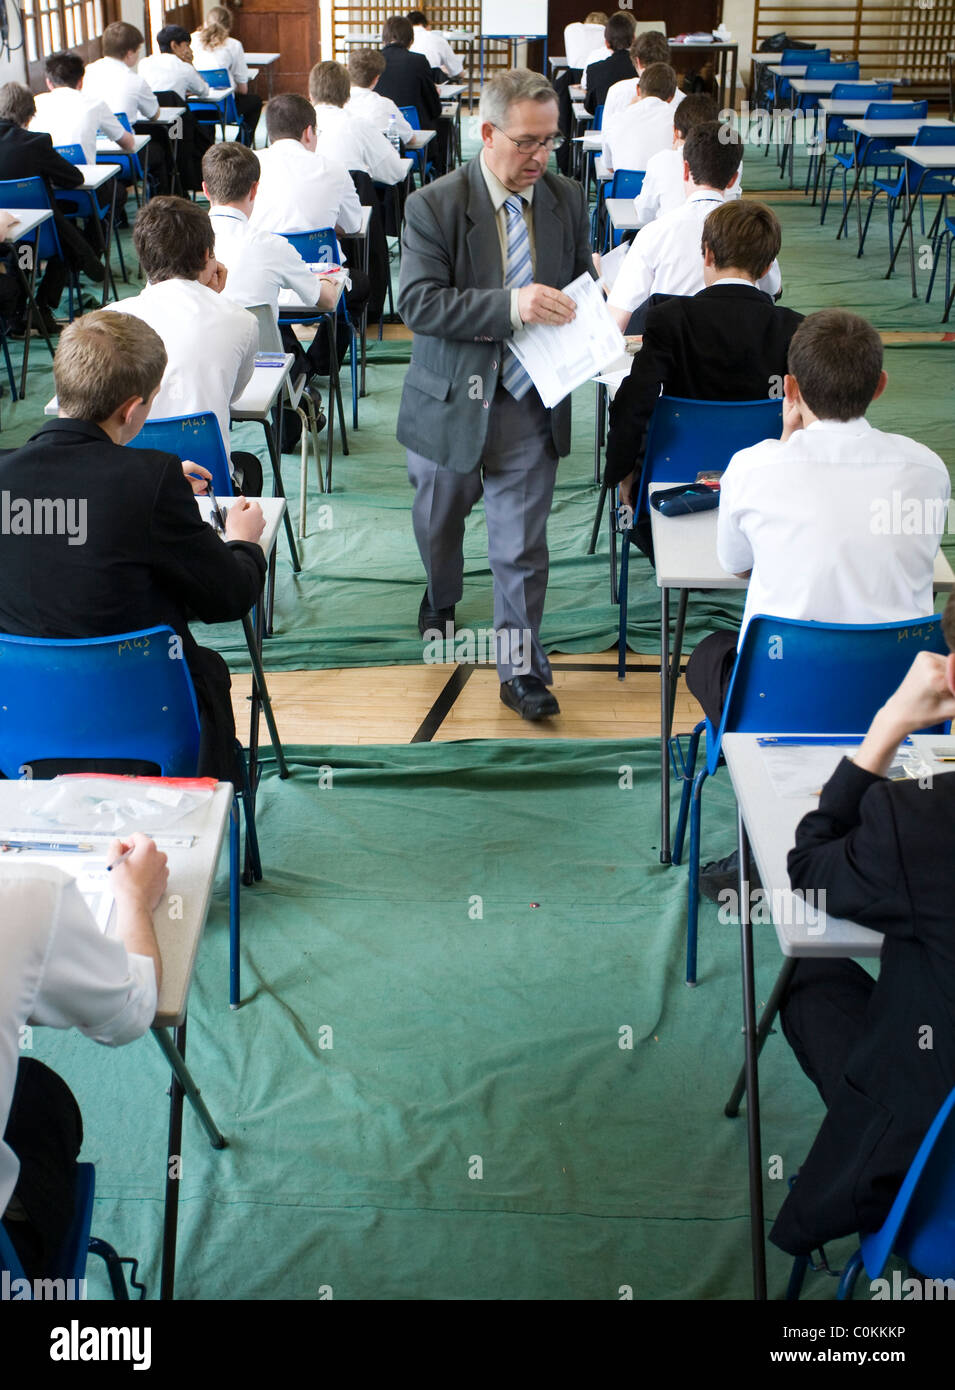 Pupils fill an exam hall to take a GCSE exam at Maidstone Grammar school in Maidstone, Kent, U.K. - Stock Image